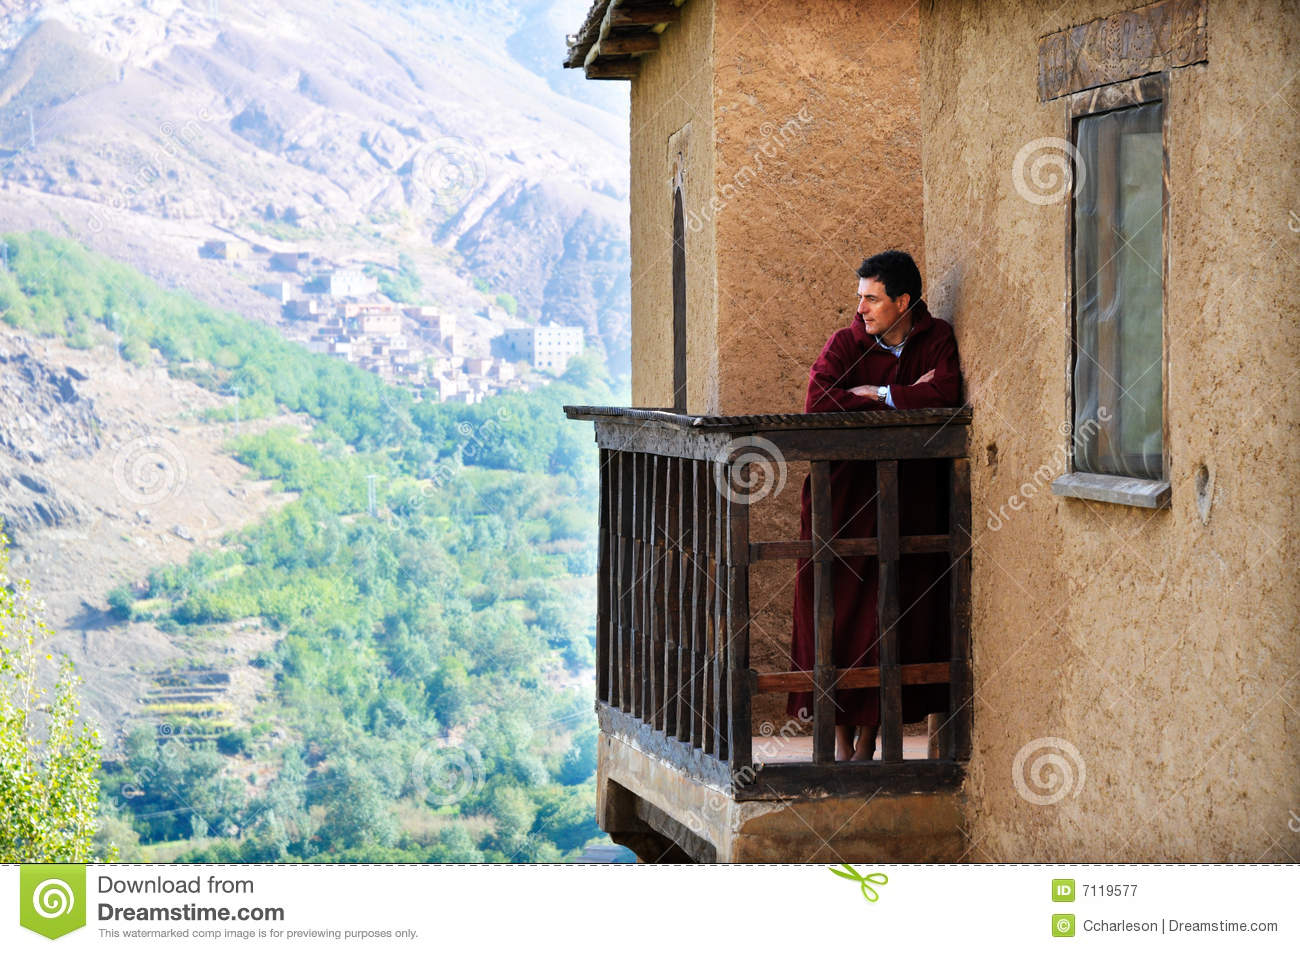 Man visiting a kasbah in morocco